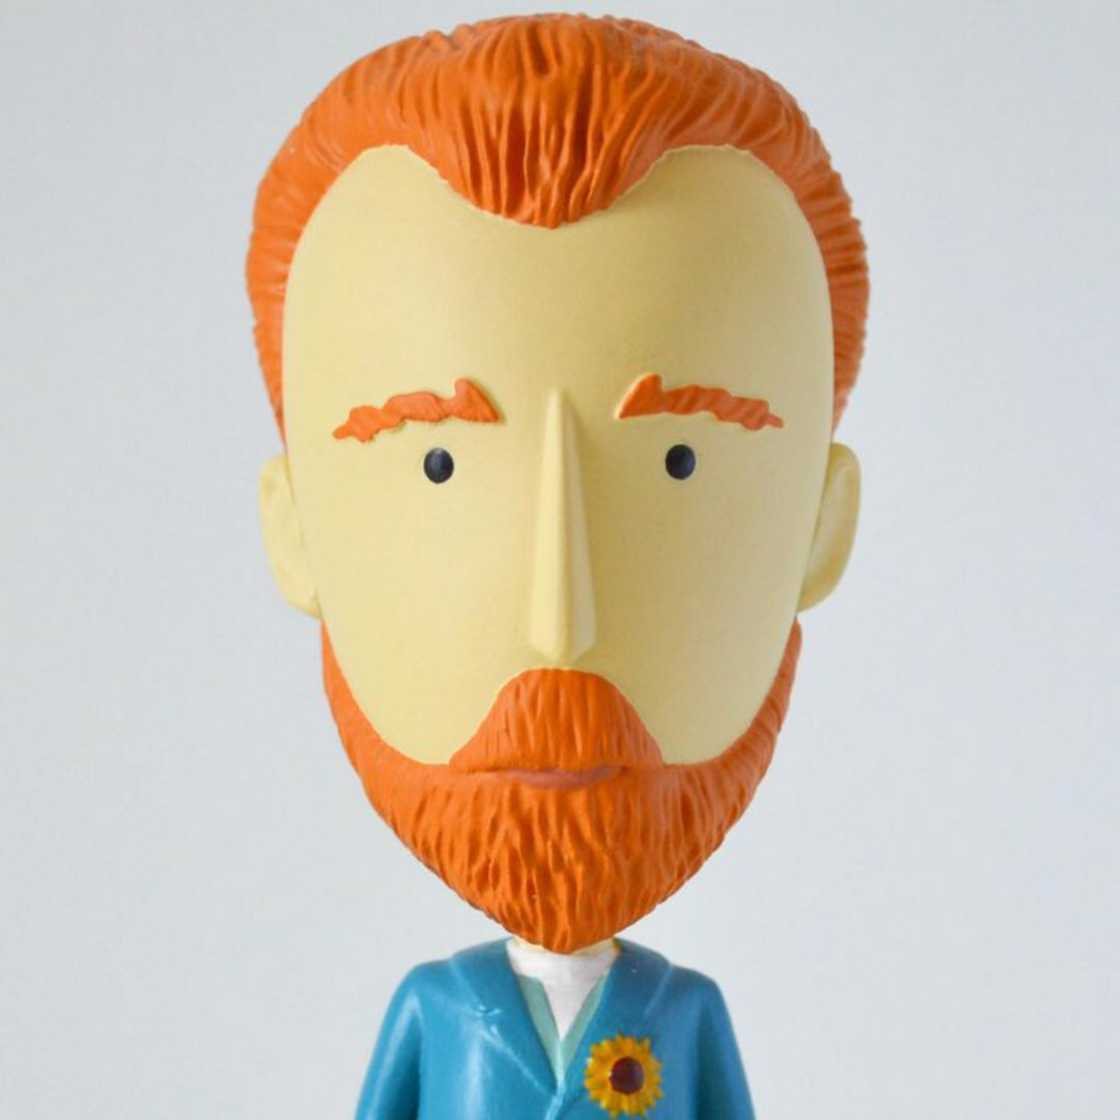 The Vincent Van Gogh action figure with his detachable ear